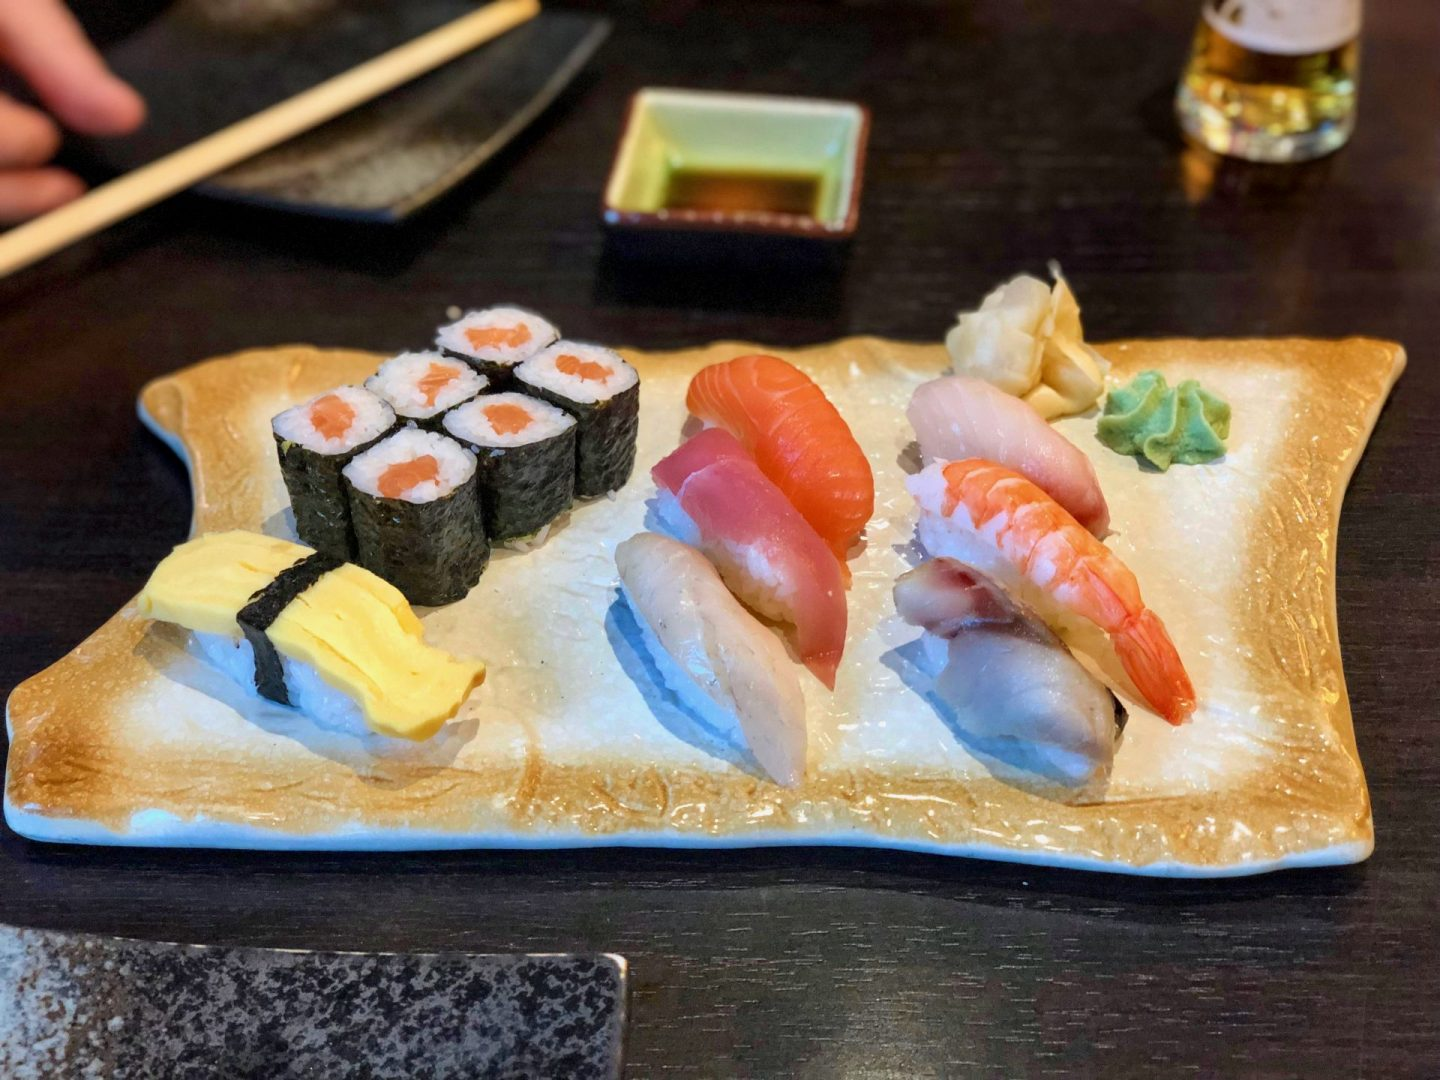 A platter of sushi in leeds showing different types of nigir and salmon maki